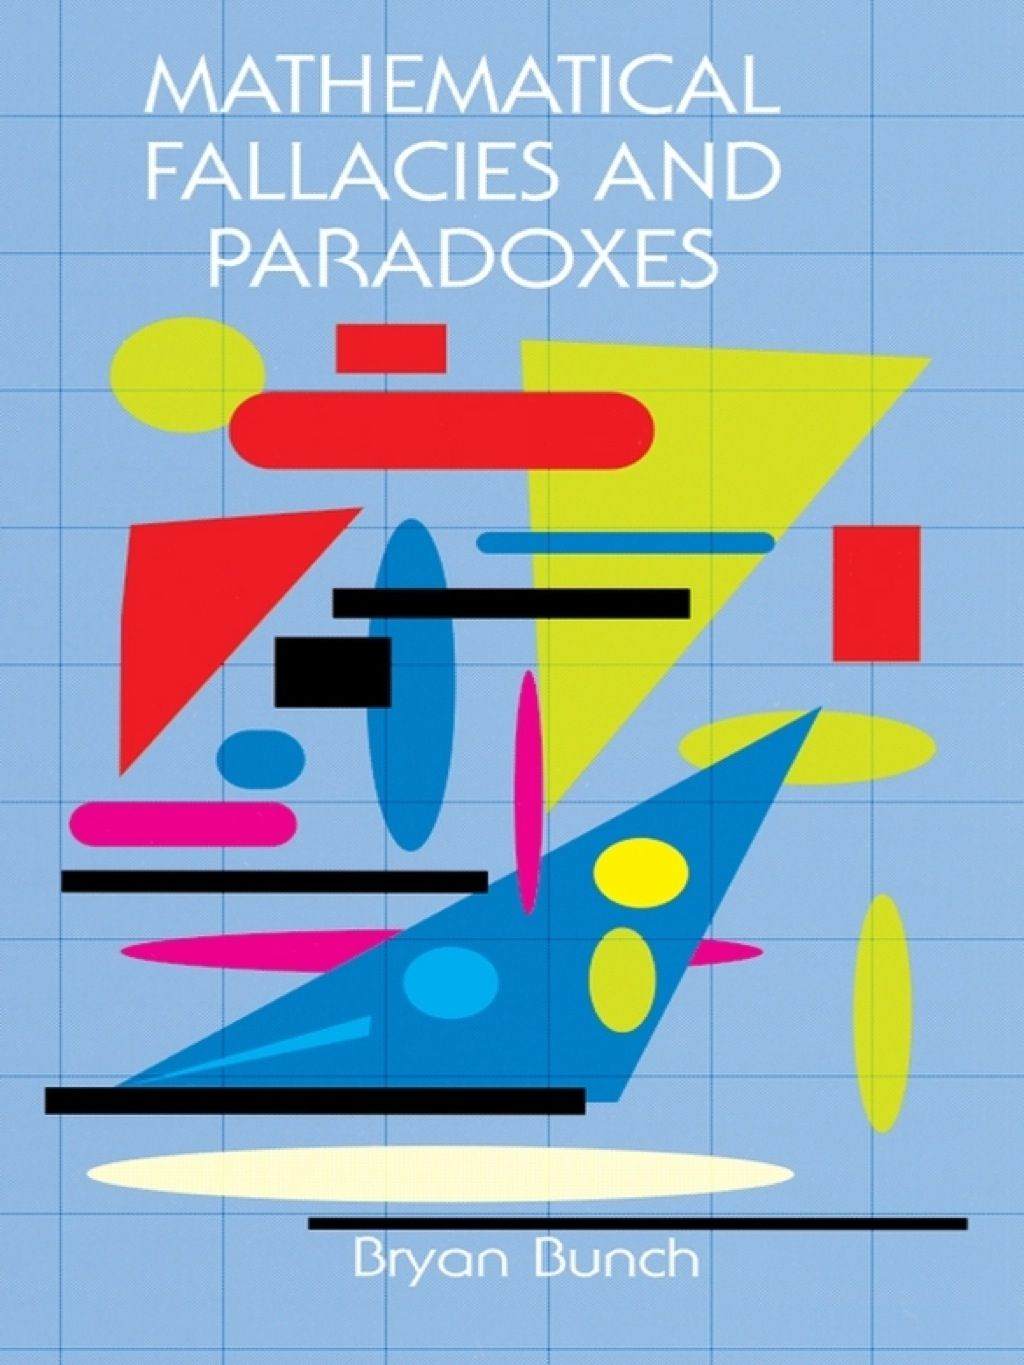 Mathematical Fallacies And Paradoxes Ebook In